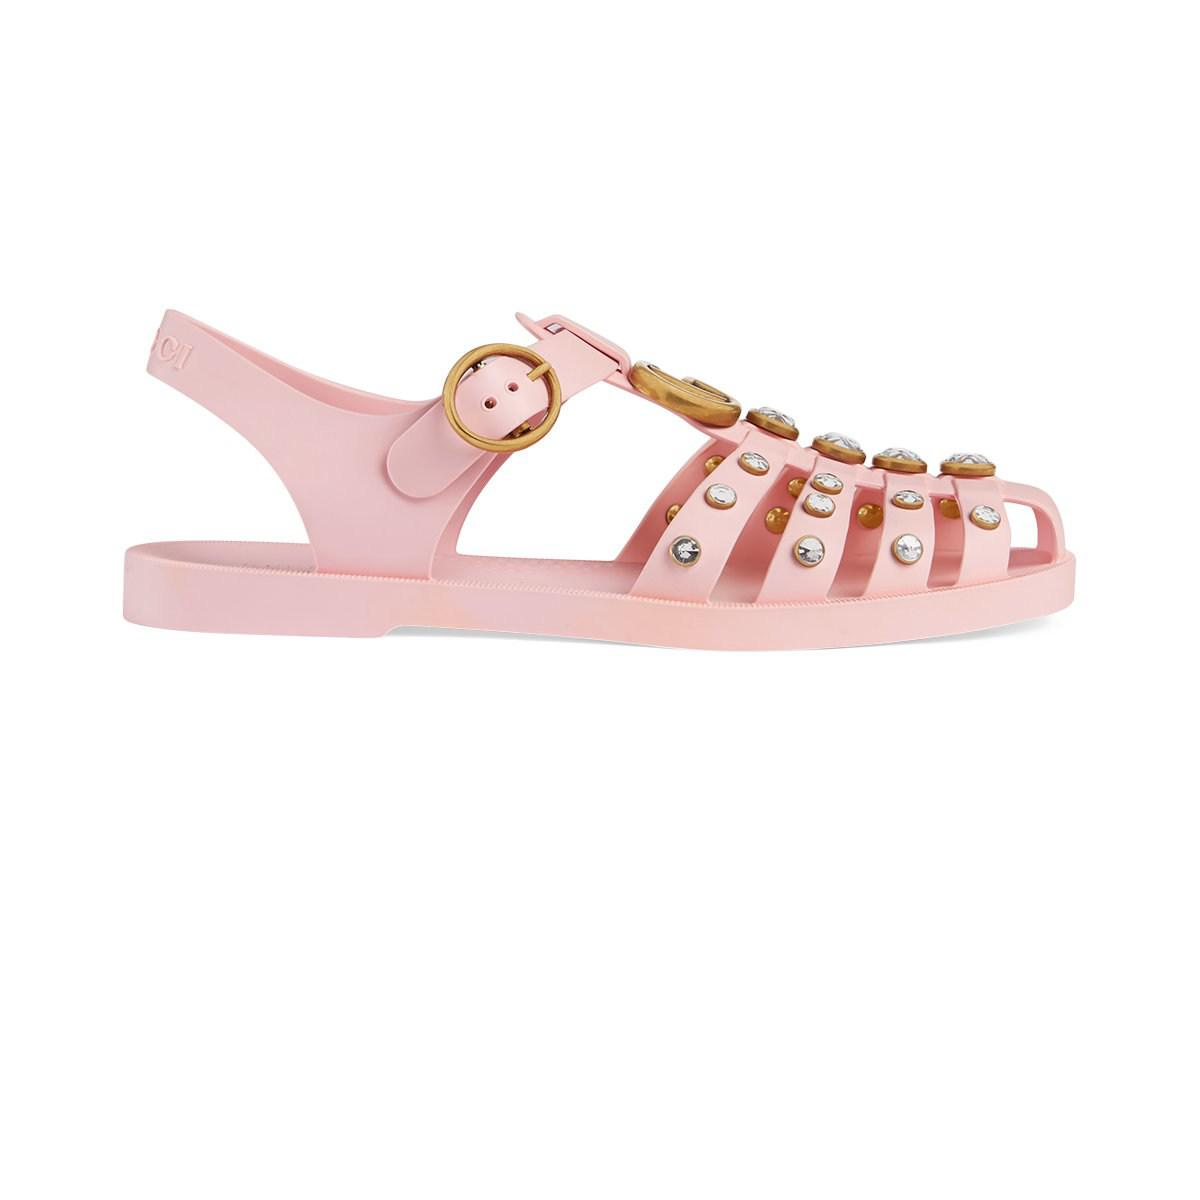 a716bd57f8f8 Gucci Crystal-embellished Rubber Sandals in Pink - Save 9% - Lyst